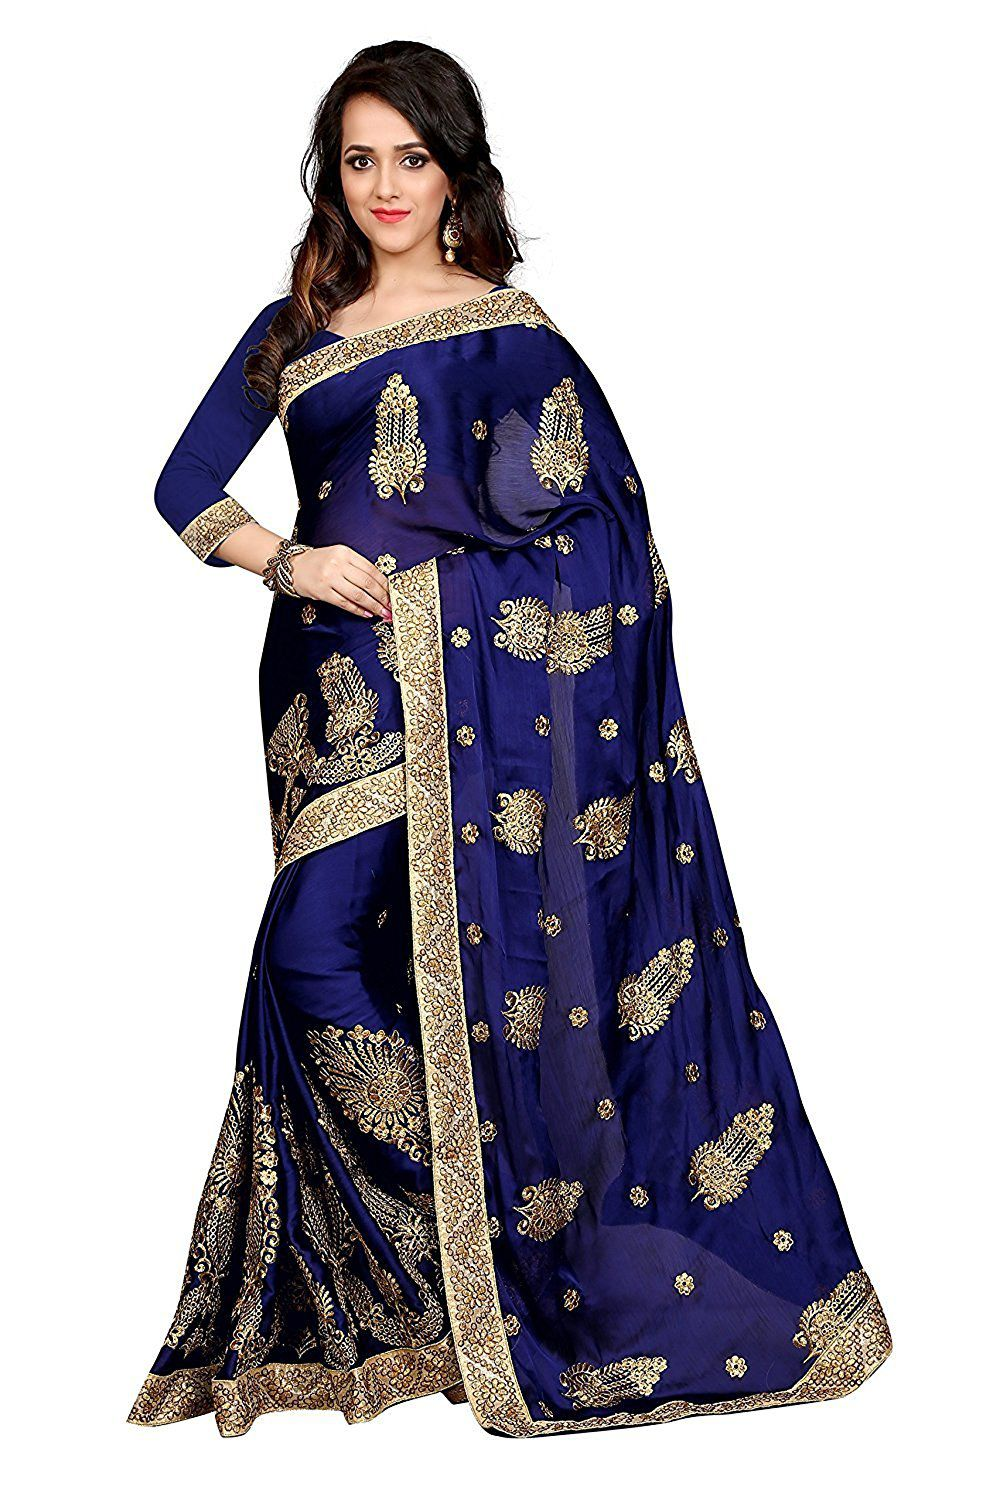 62960dadfff4d6 Geet Fashion Solution Blue Georgette Saree - Buy Geet Fashion Solution Blue  Georgette Saree Online at Low Price - Snapdeal.com